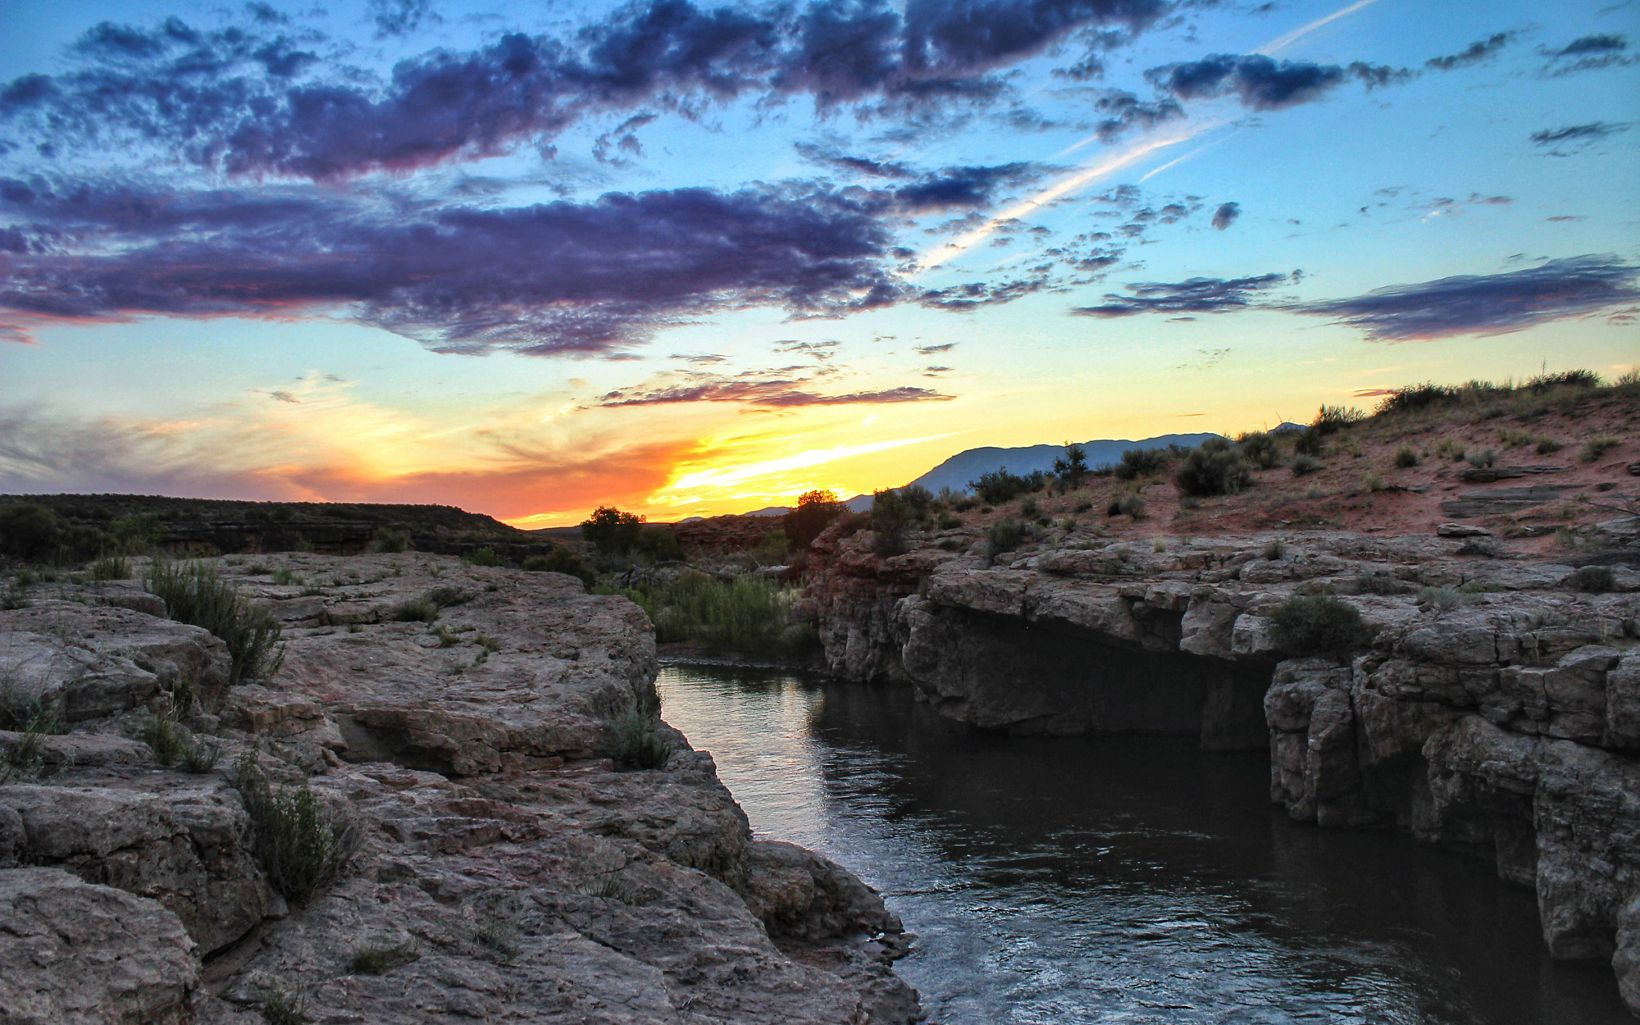 Scattered vegetationn on a desert landscape cut throuugh by the Virgin River and lit by the sun just beyond the horizon.